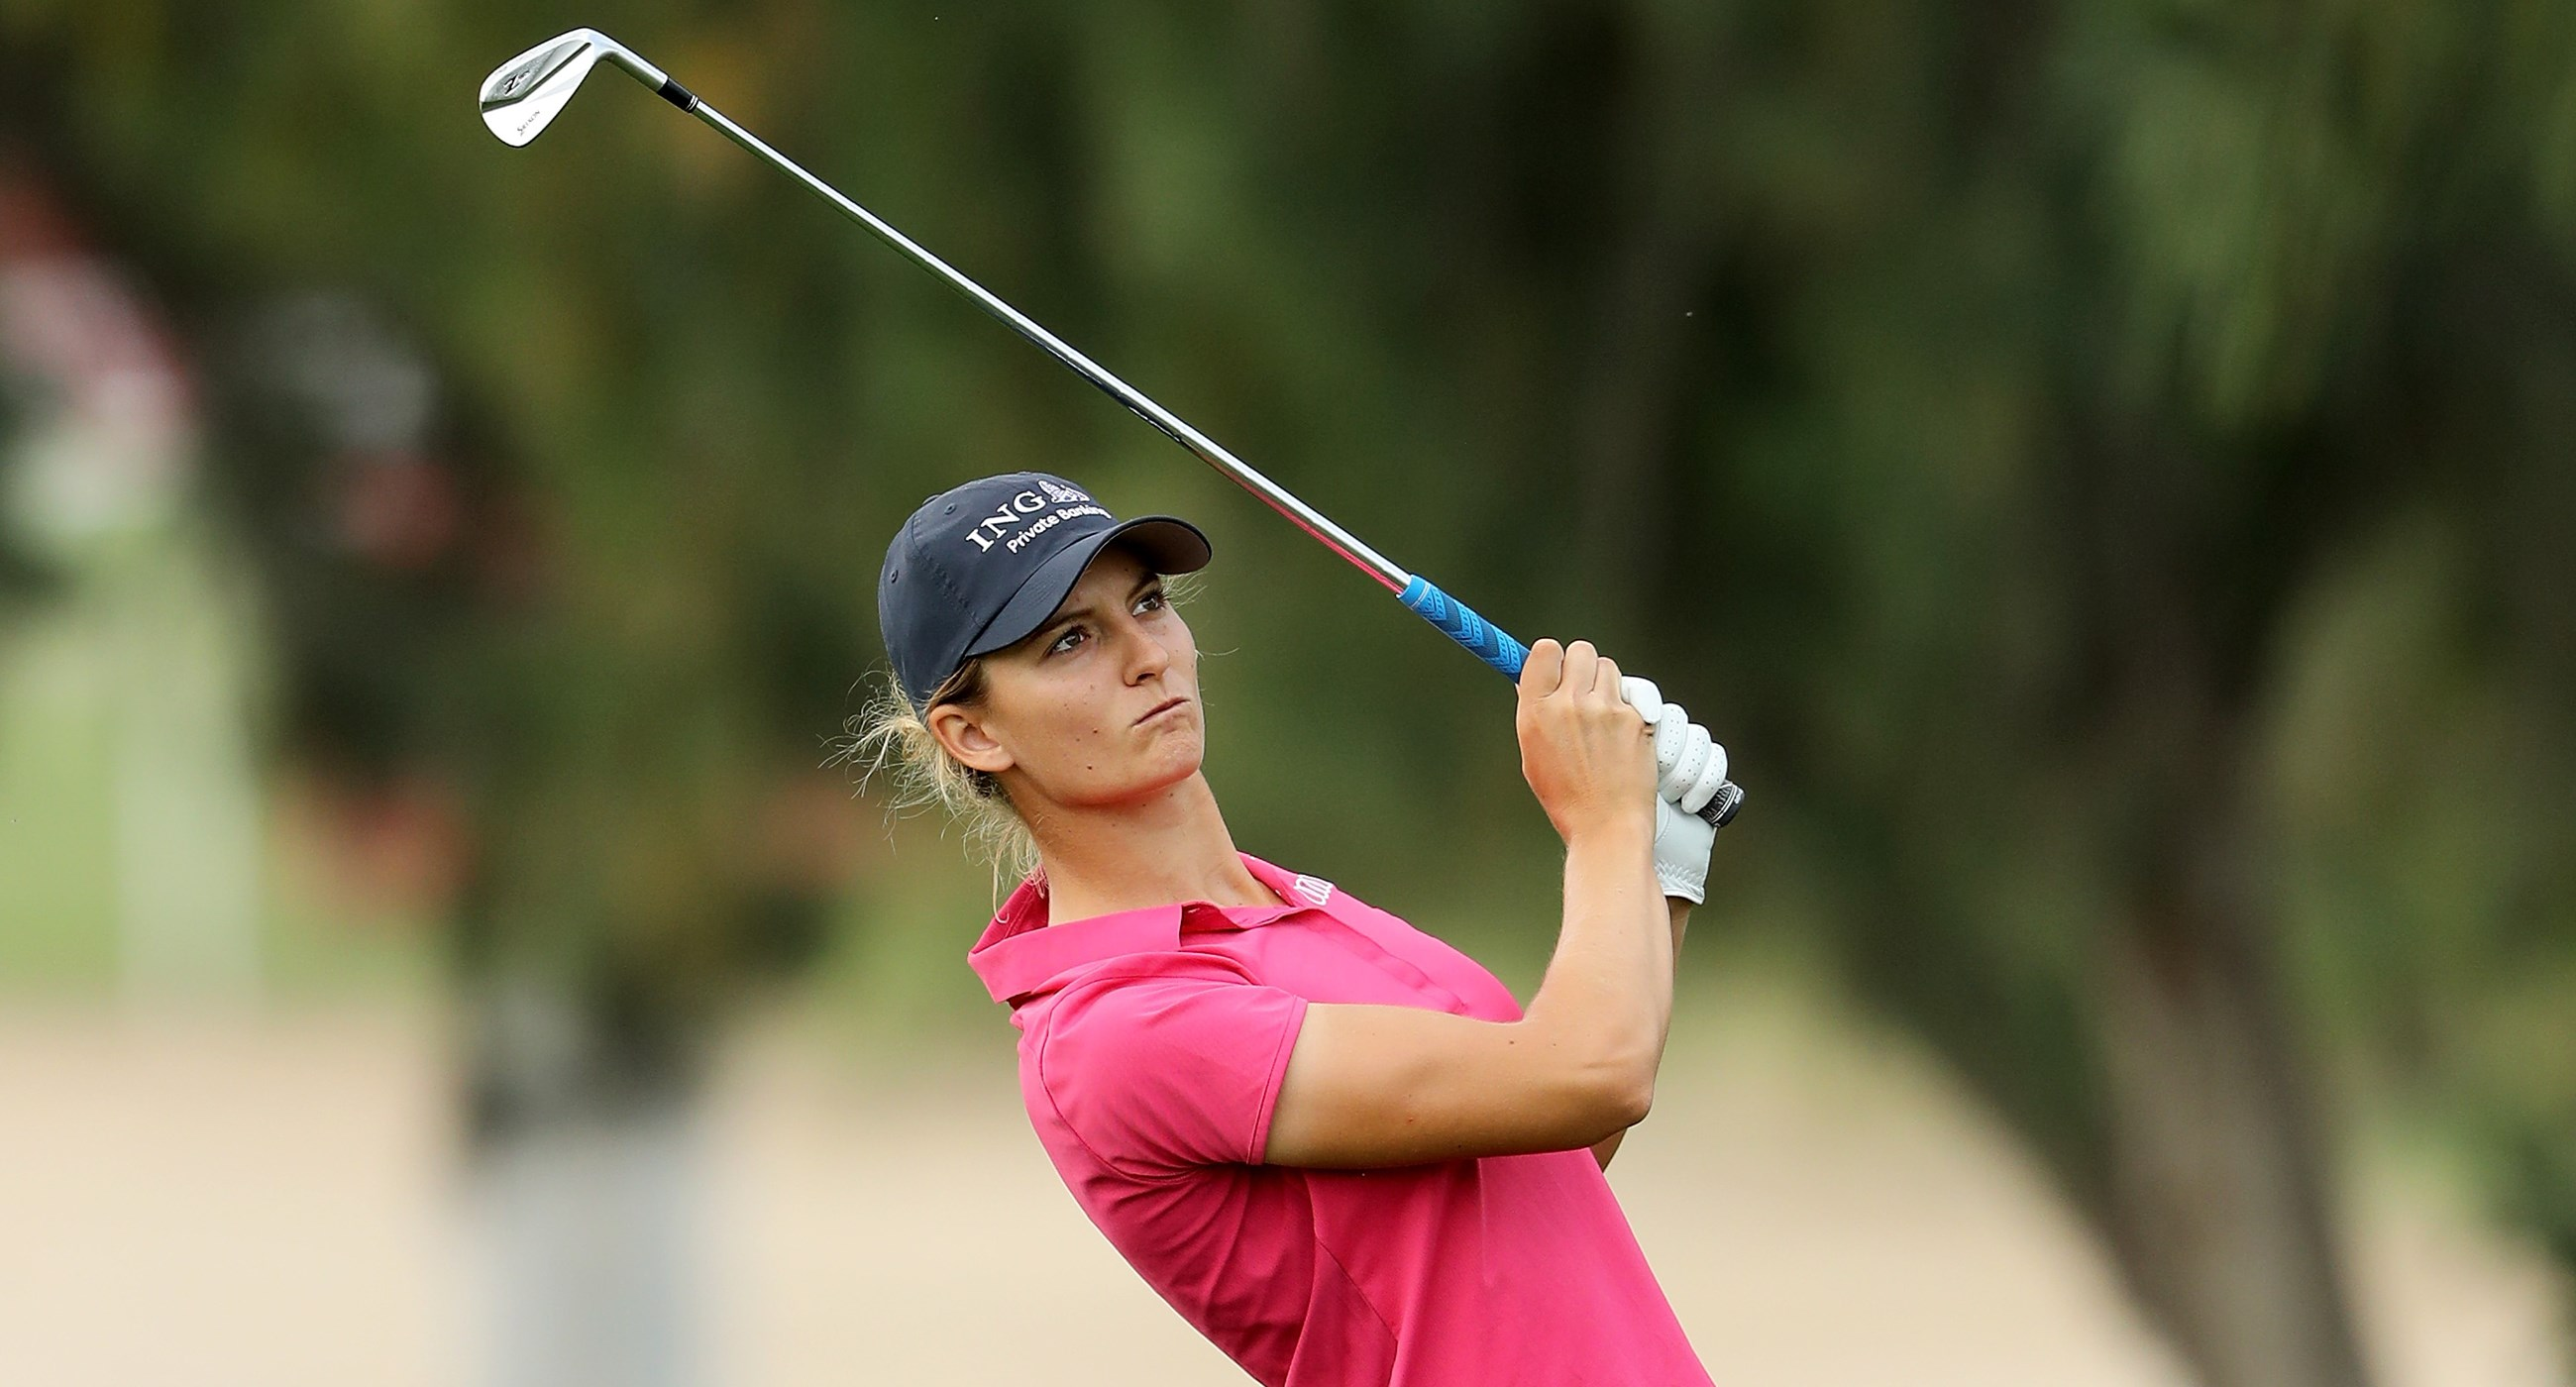 Fatima Bint Mubarak Ladies Open, golf